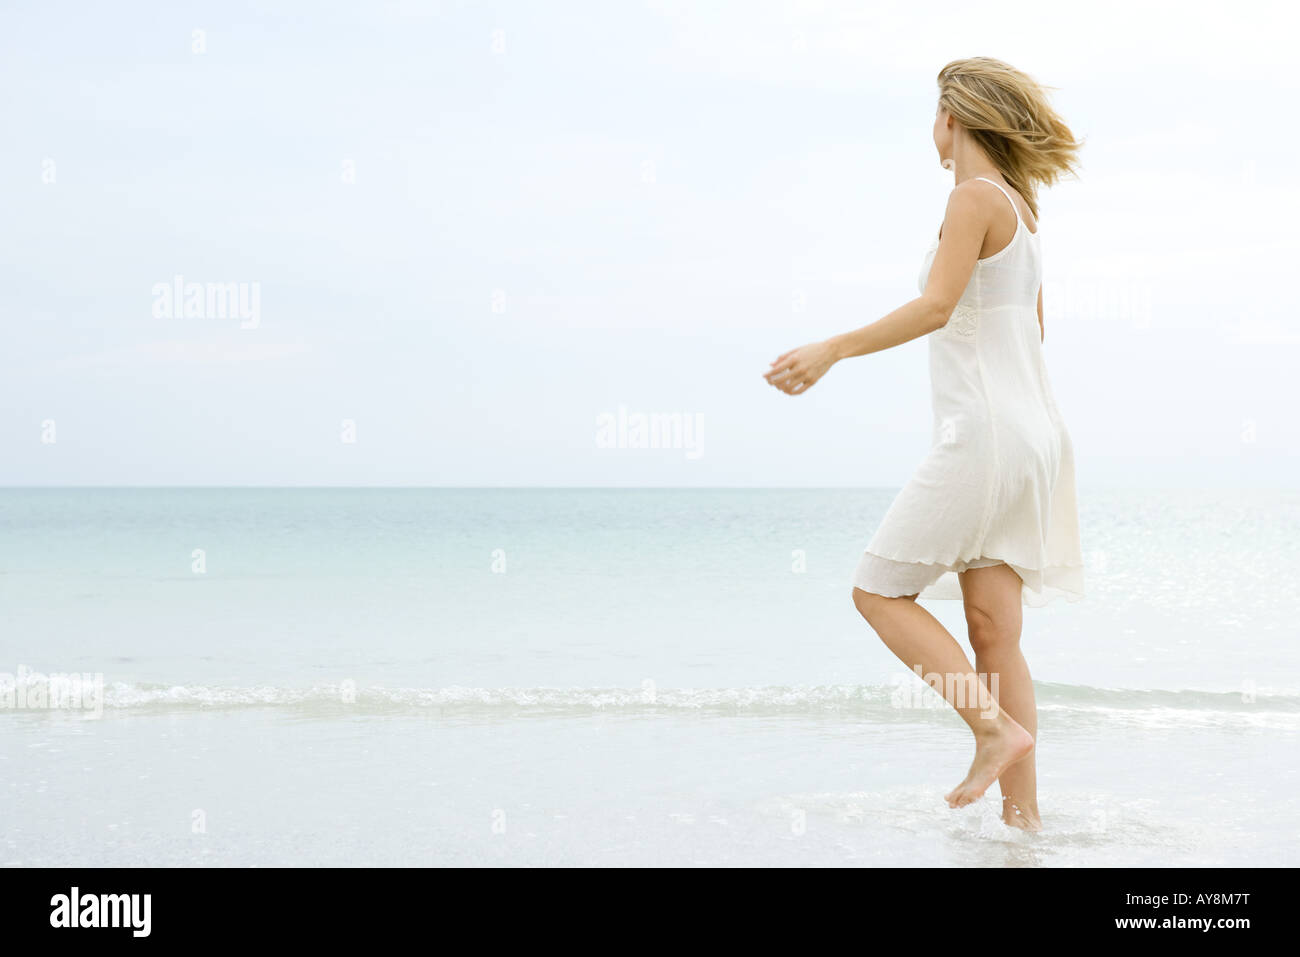 Young woman in sundress walking in shallow water at beach, looking toward horizon Stock Photo